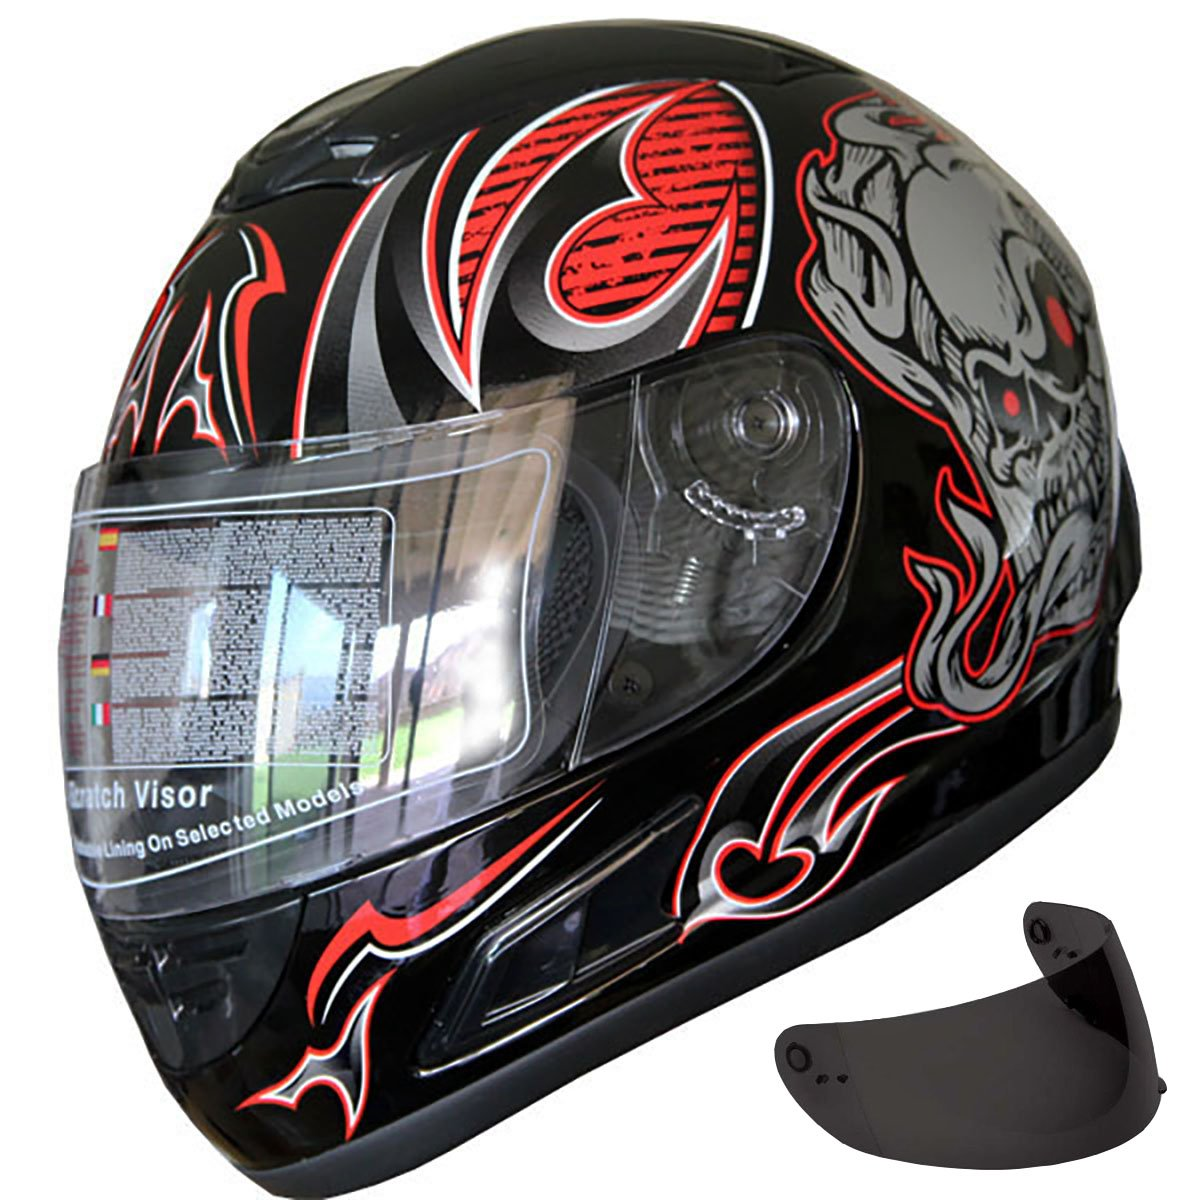 Motorcycle Street Sport Bike Helmet Full Face Helmet 2 Visors Comes with Clear Shield and Free Dark Tinted Shield (F54_Red, XS)